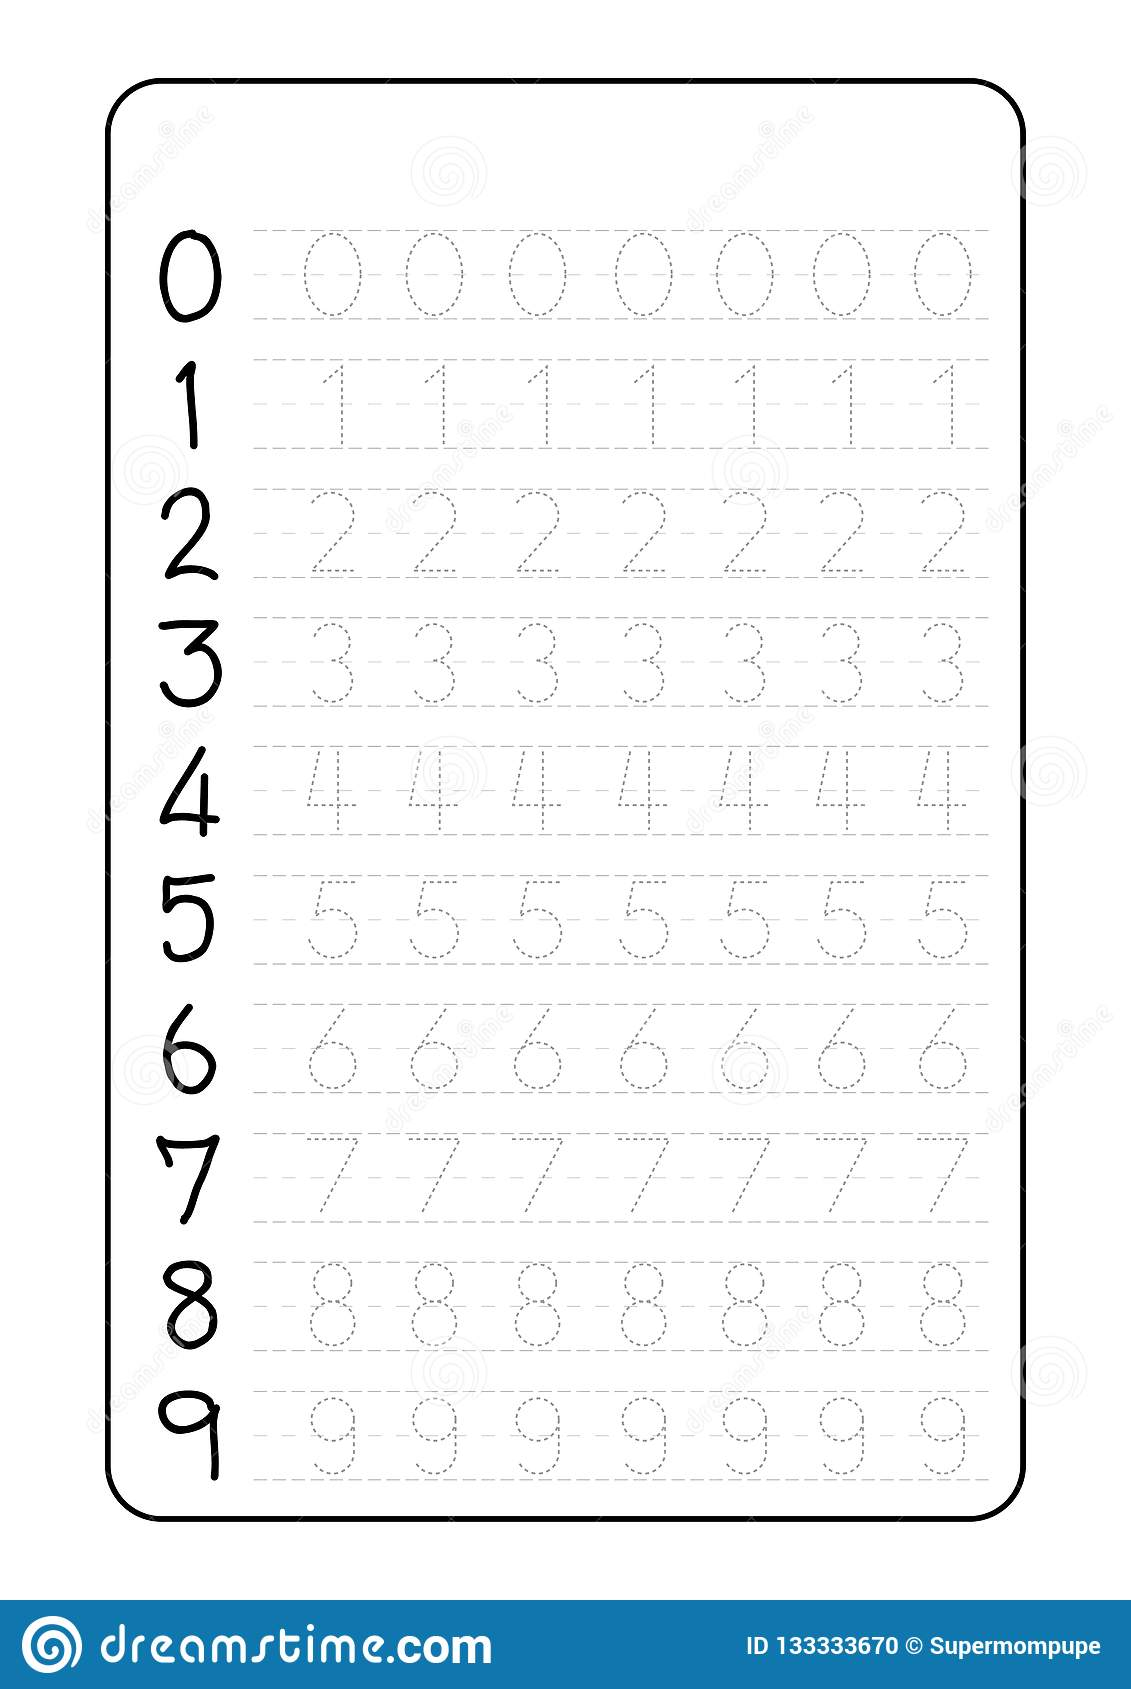 alphabet letters tracing worksheet with alphabet letters number formation activity sheets for. Black Bedroom Furniture Sets. Home Design Ideas